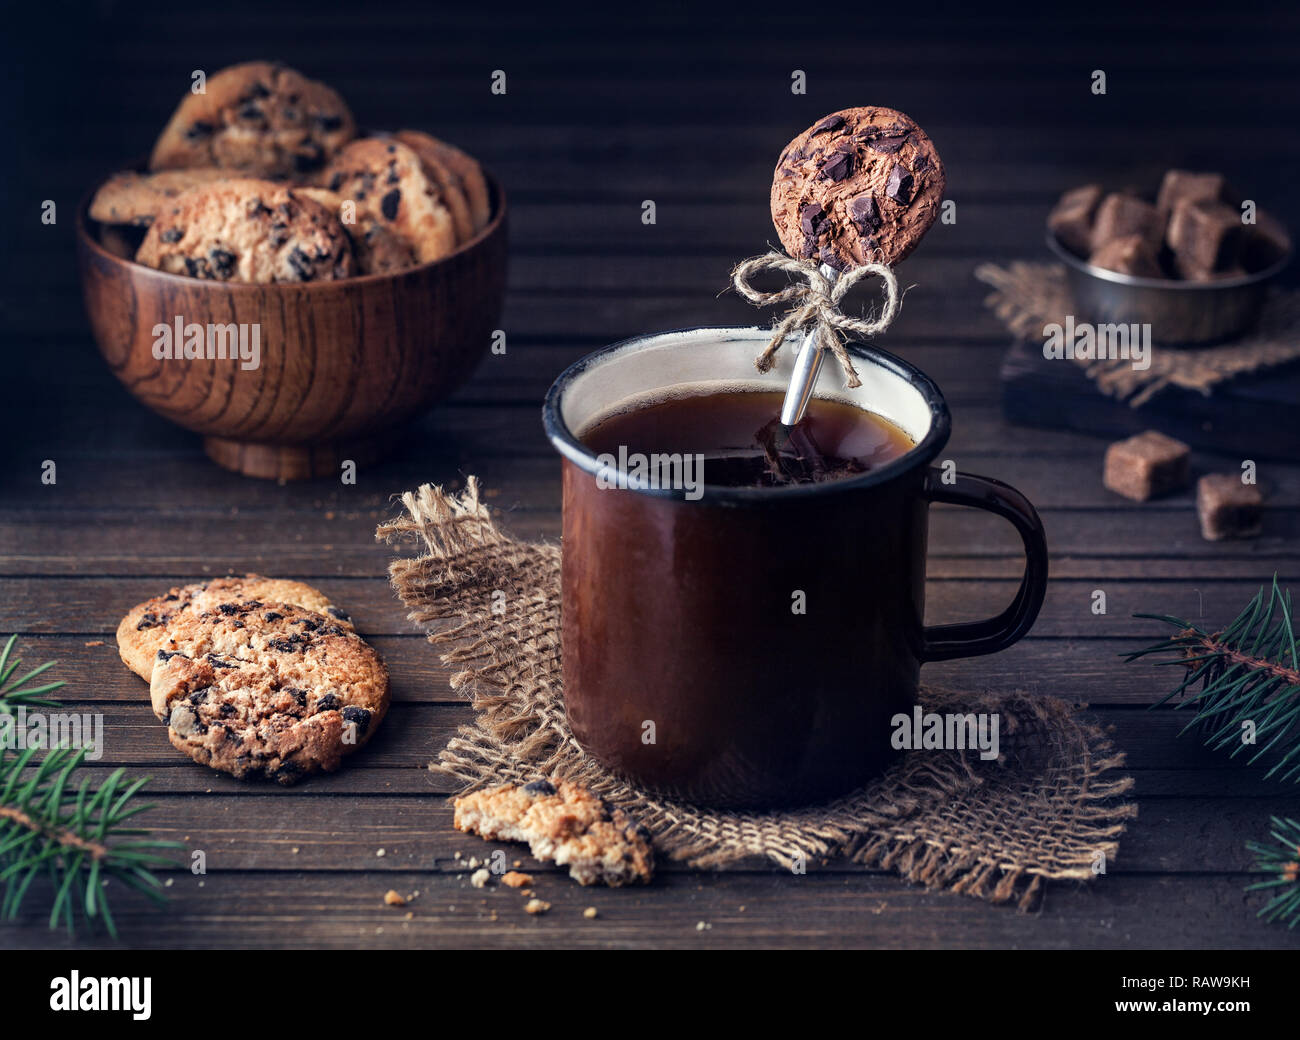 Decorative spoon from polymer clay in the mug with tea near chocolate cookies on wooden background - Stock Image